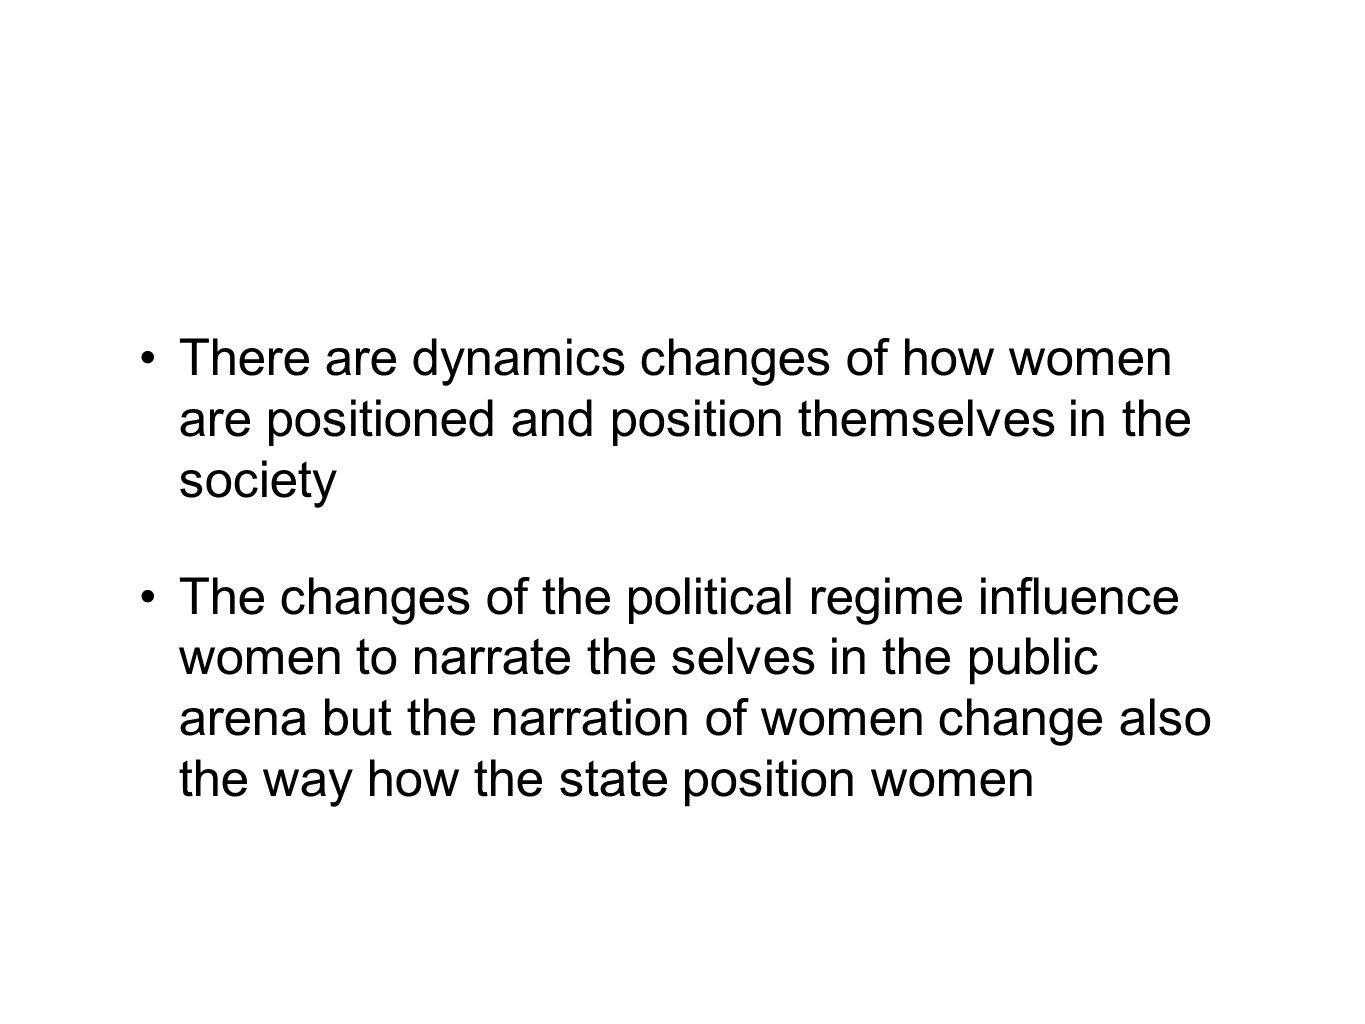 There are dynamics changes of how women are positioned and position themselves in the society The changes of the political regime influence women to narrate the selves in the public arena but the narration of women change also the way how the state position women